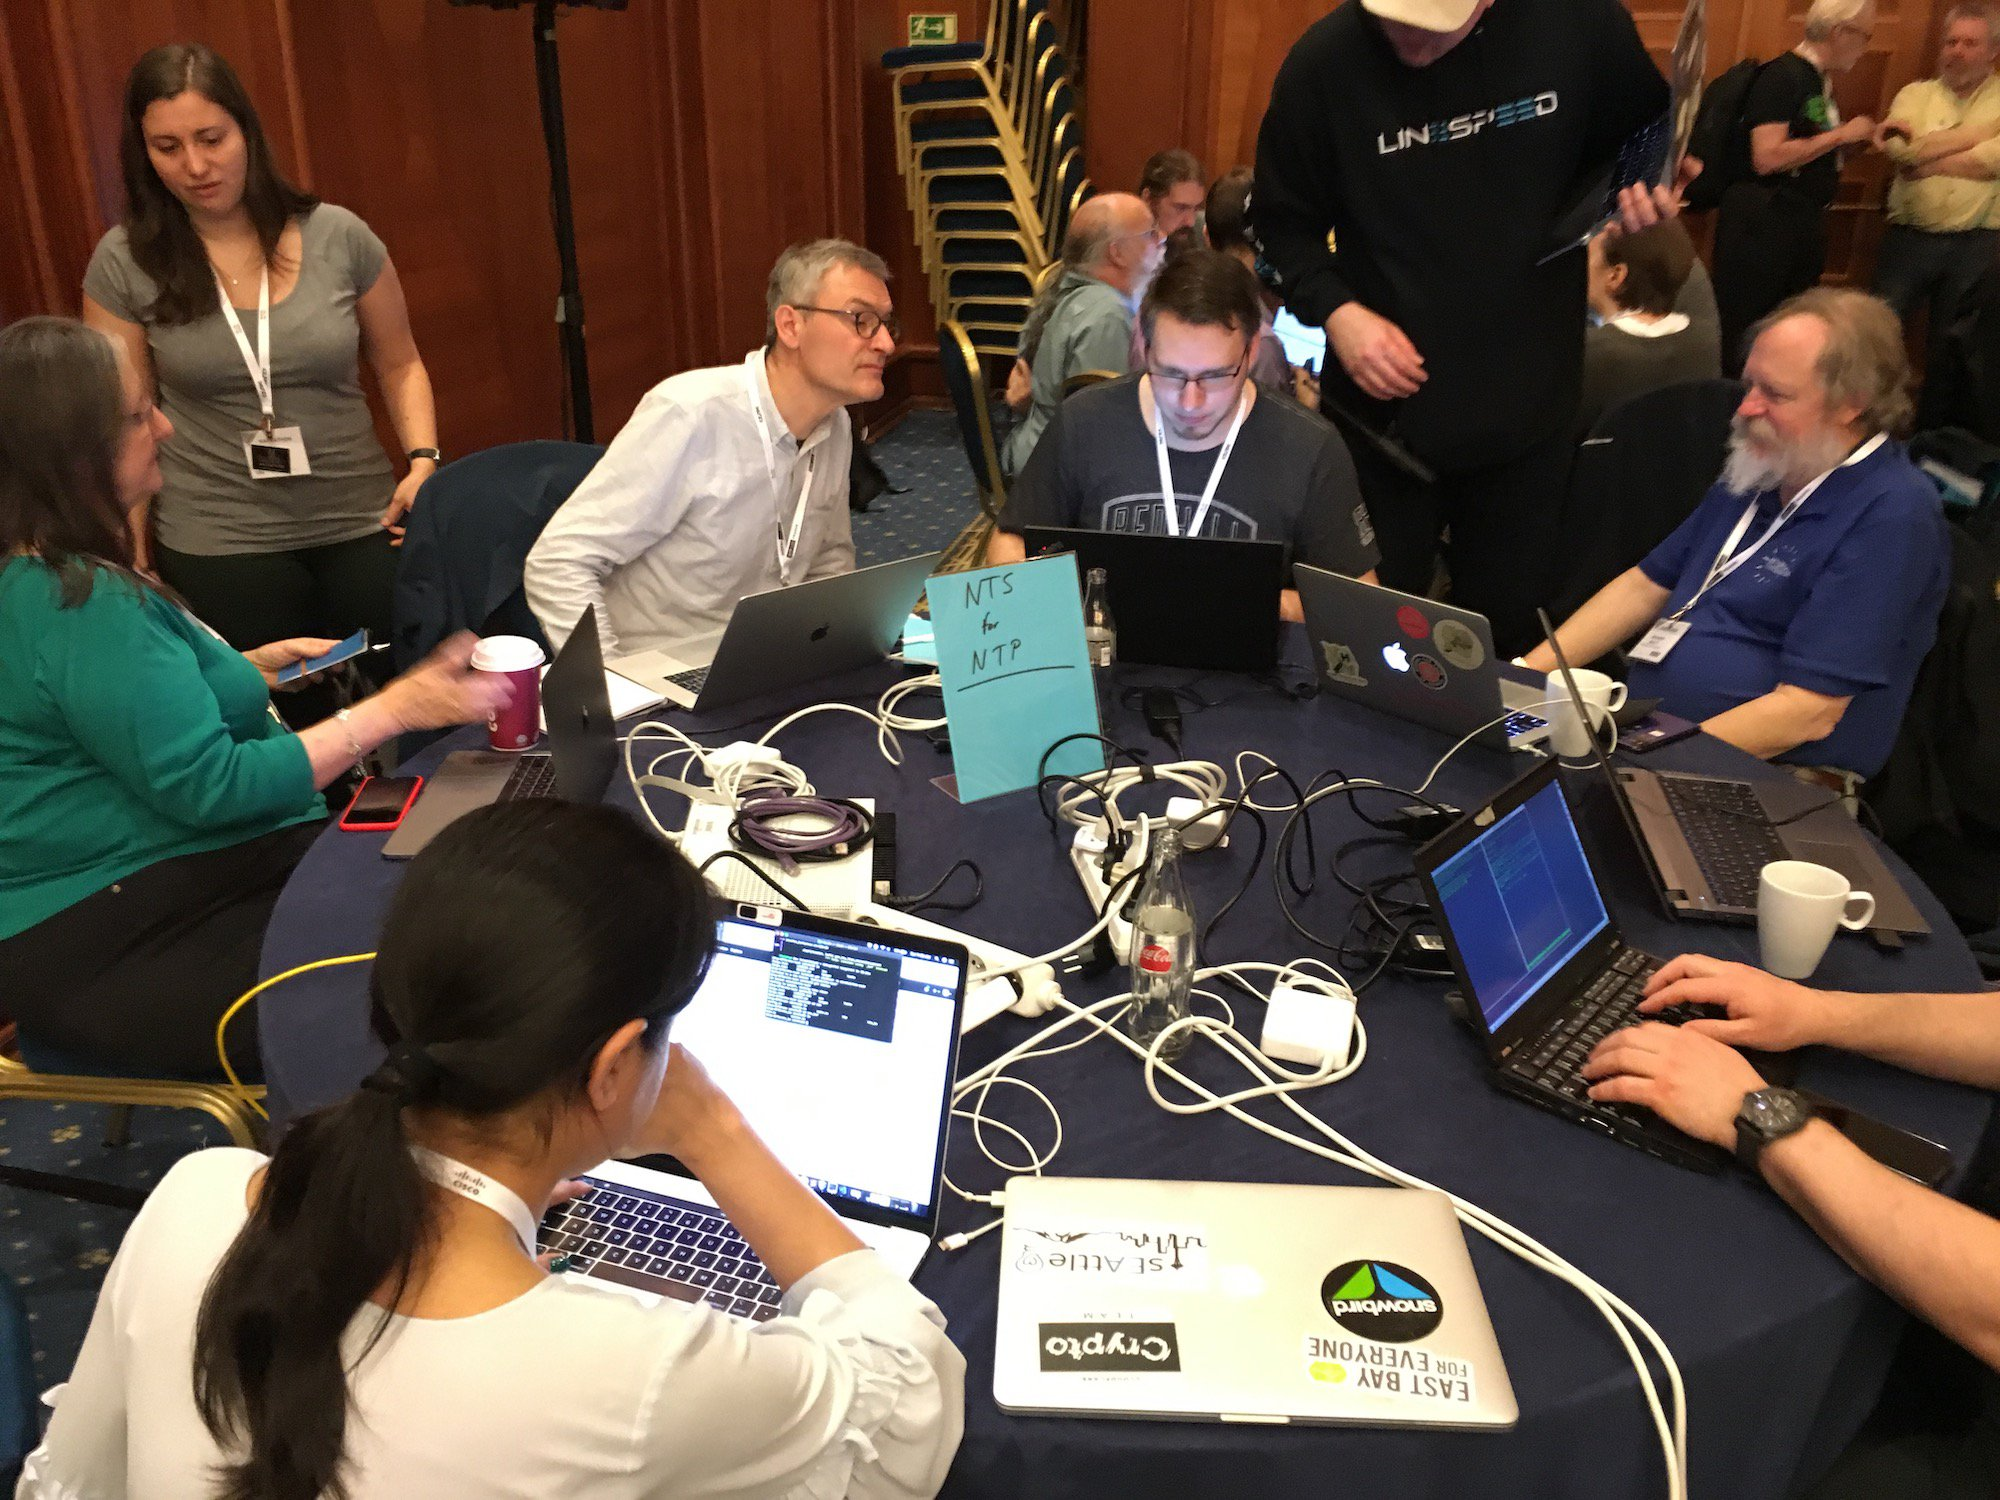 NTS project table at IETF Hackathon in Prague